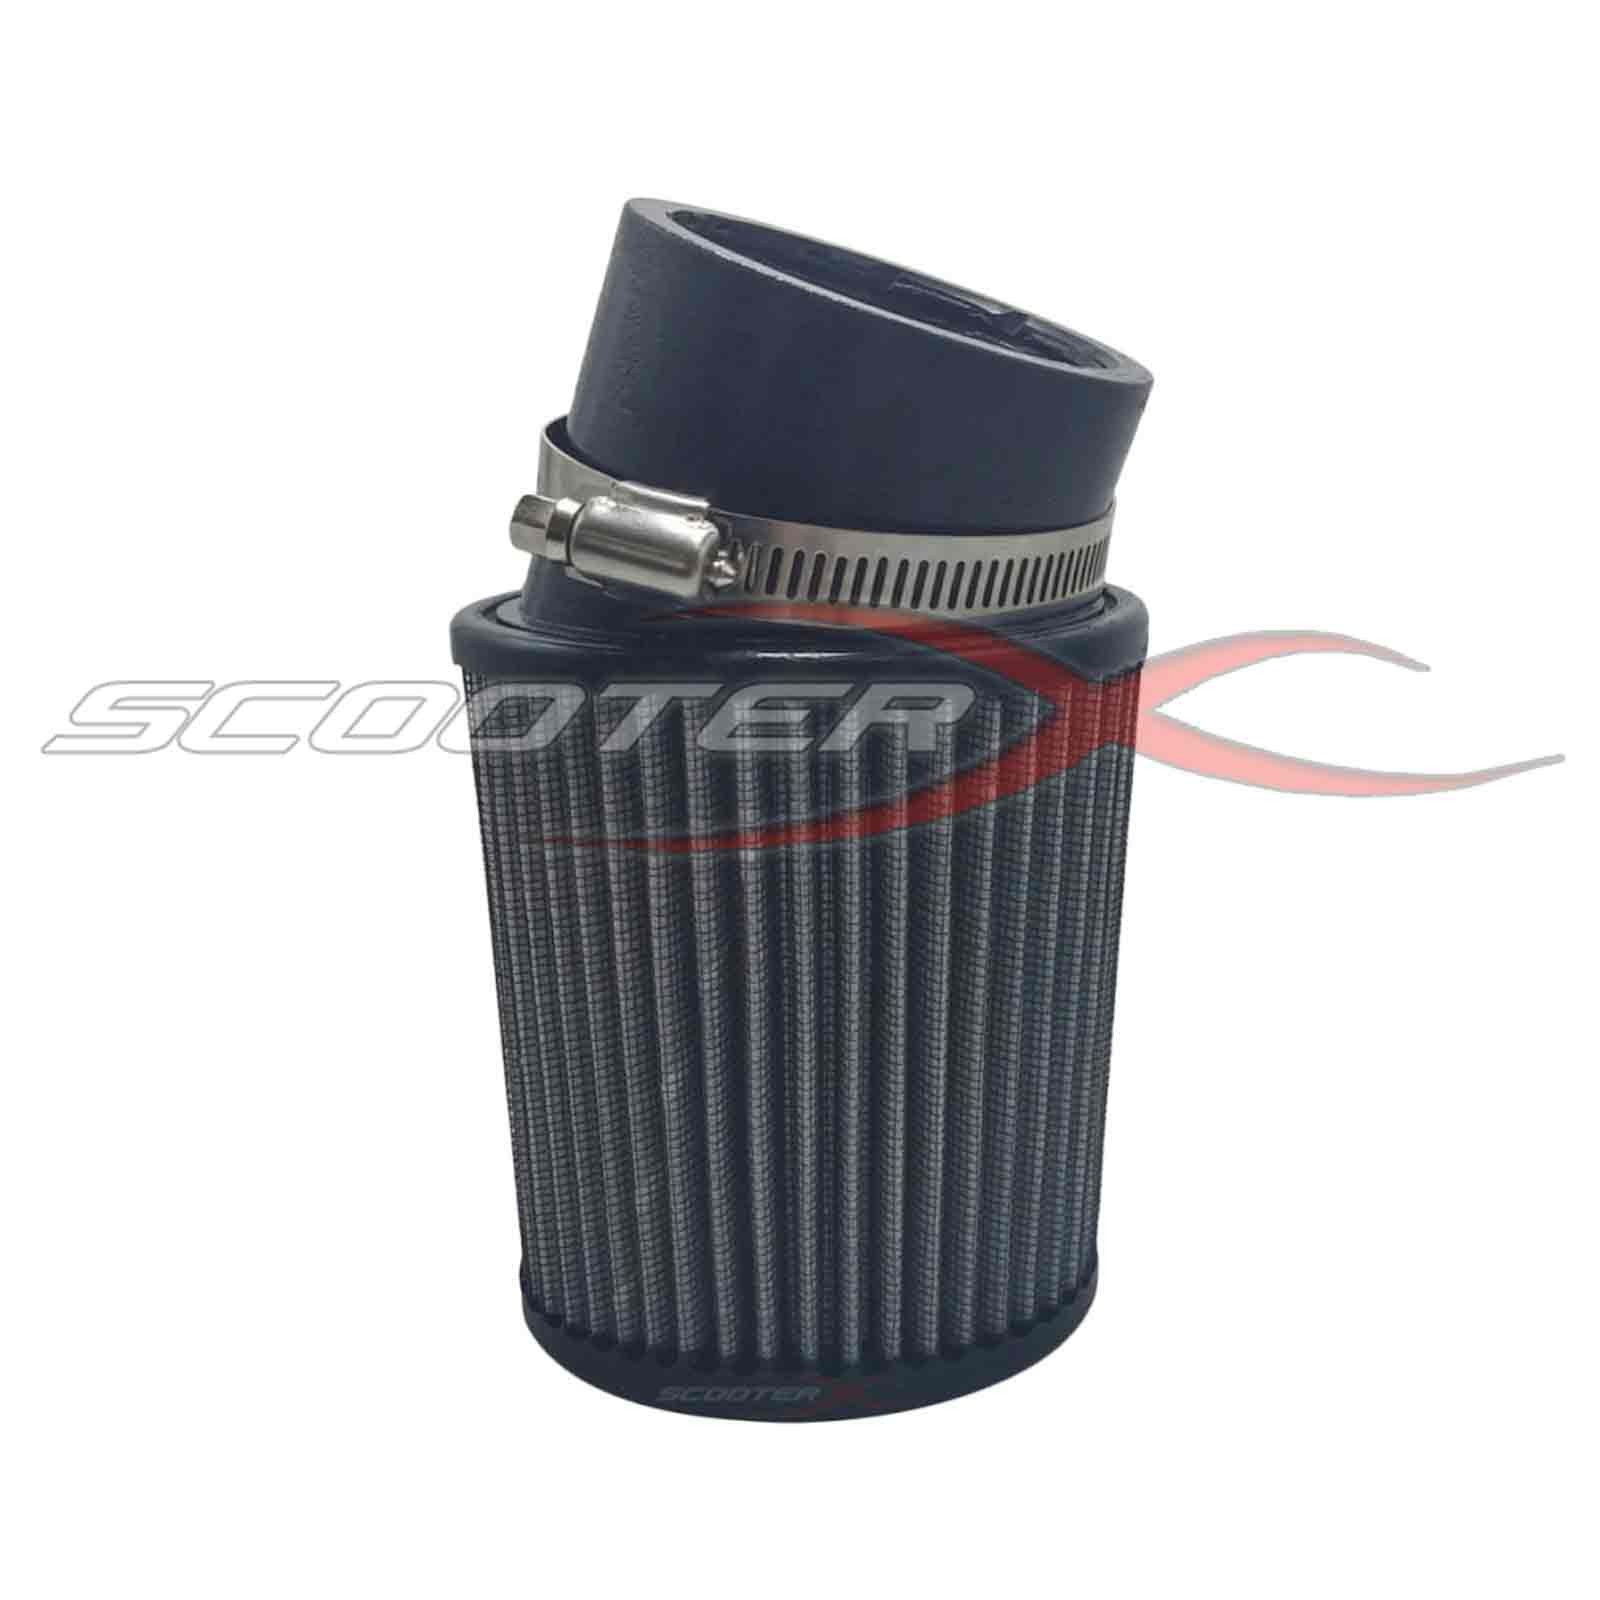 High performance 25 inch Cone Air Filter for Go Karts and